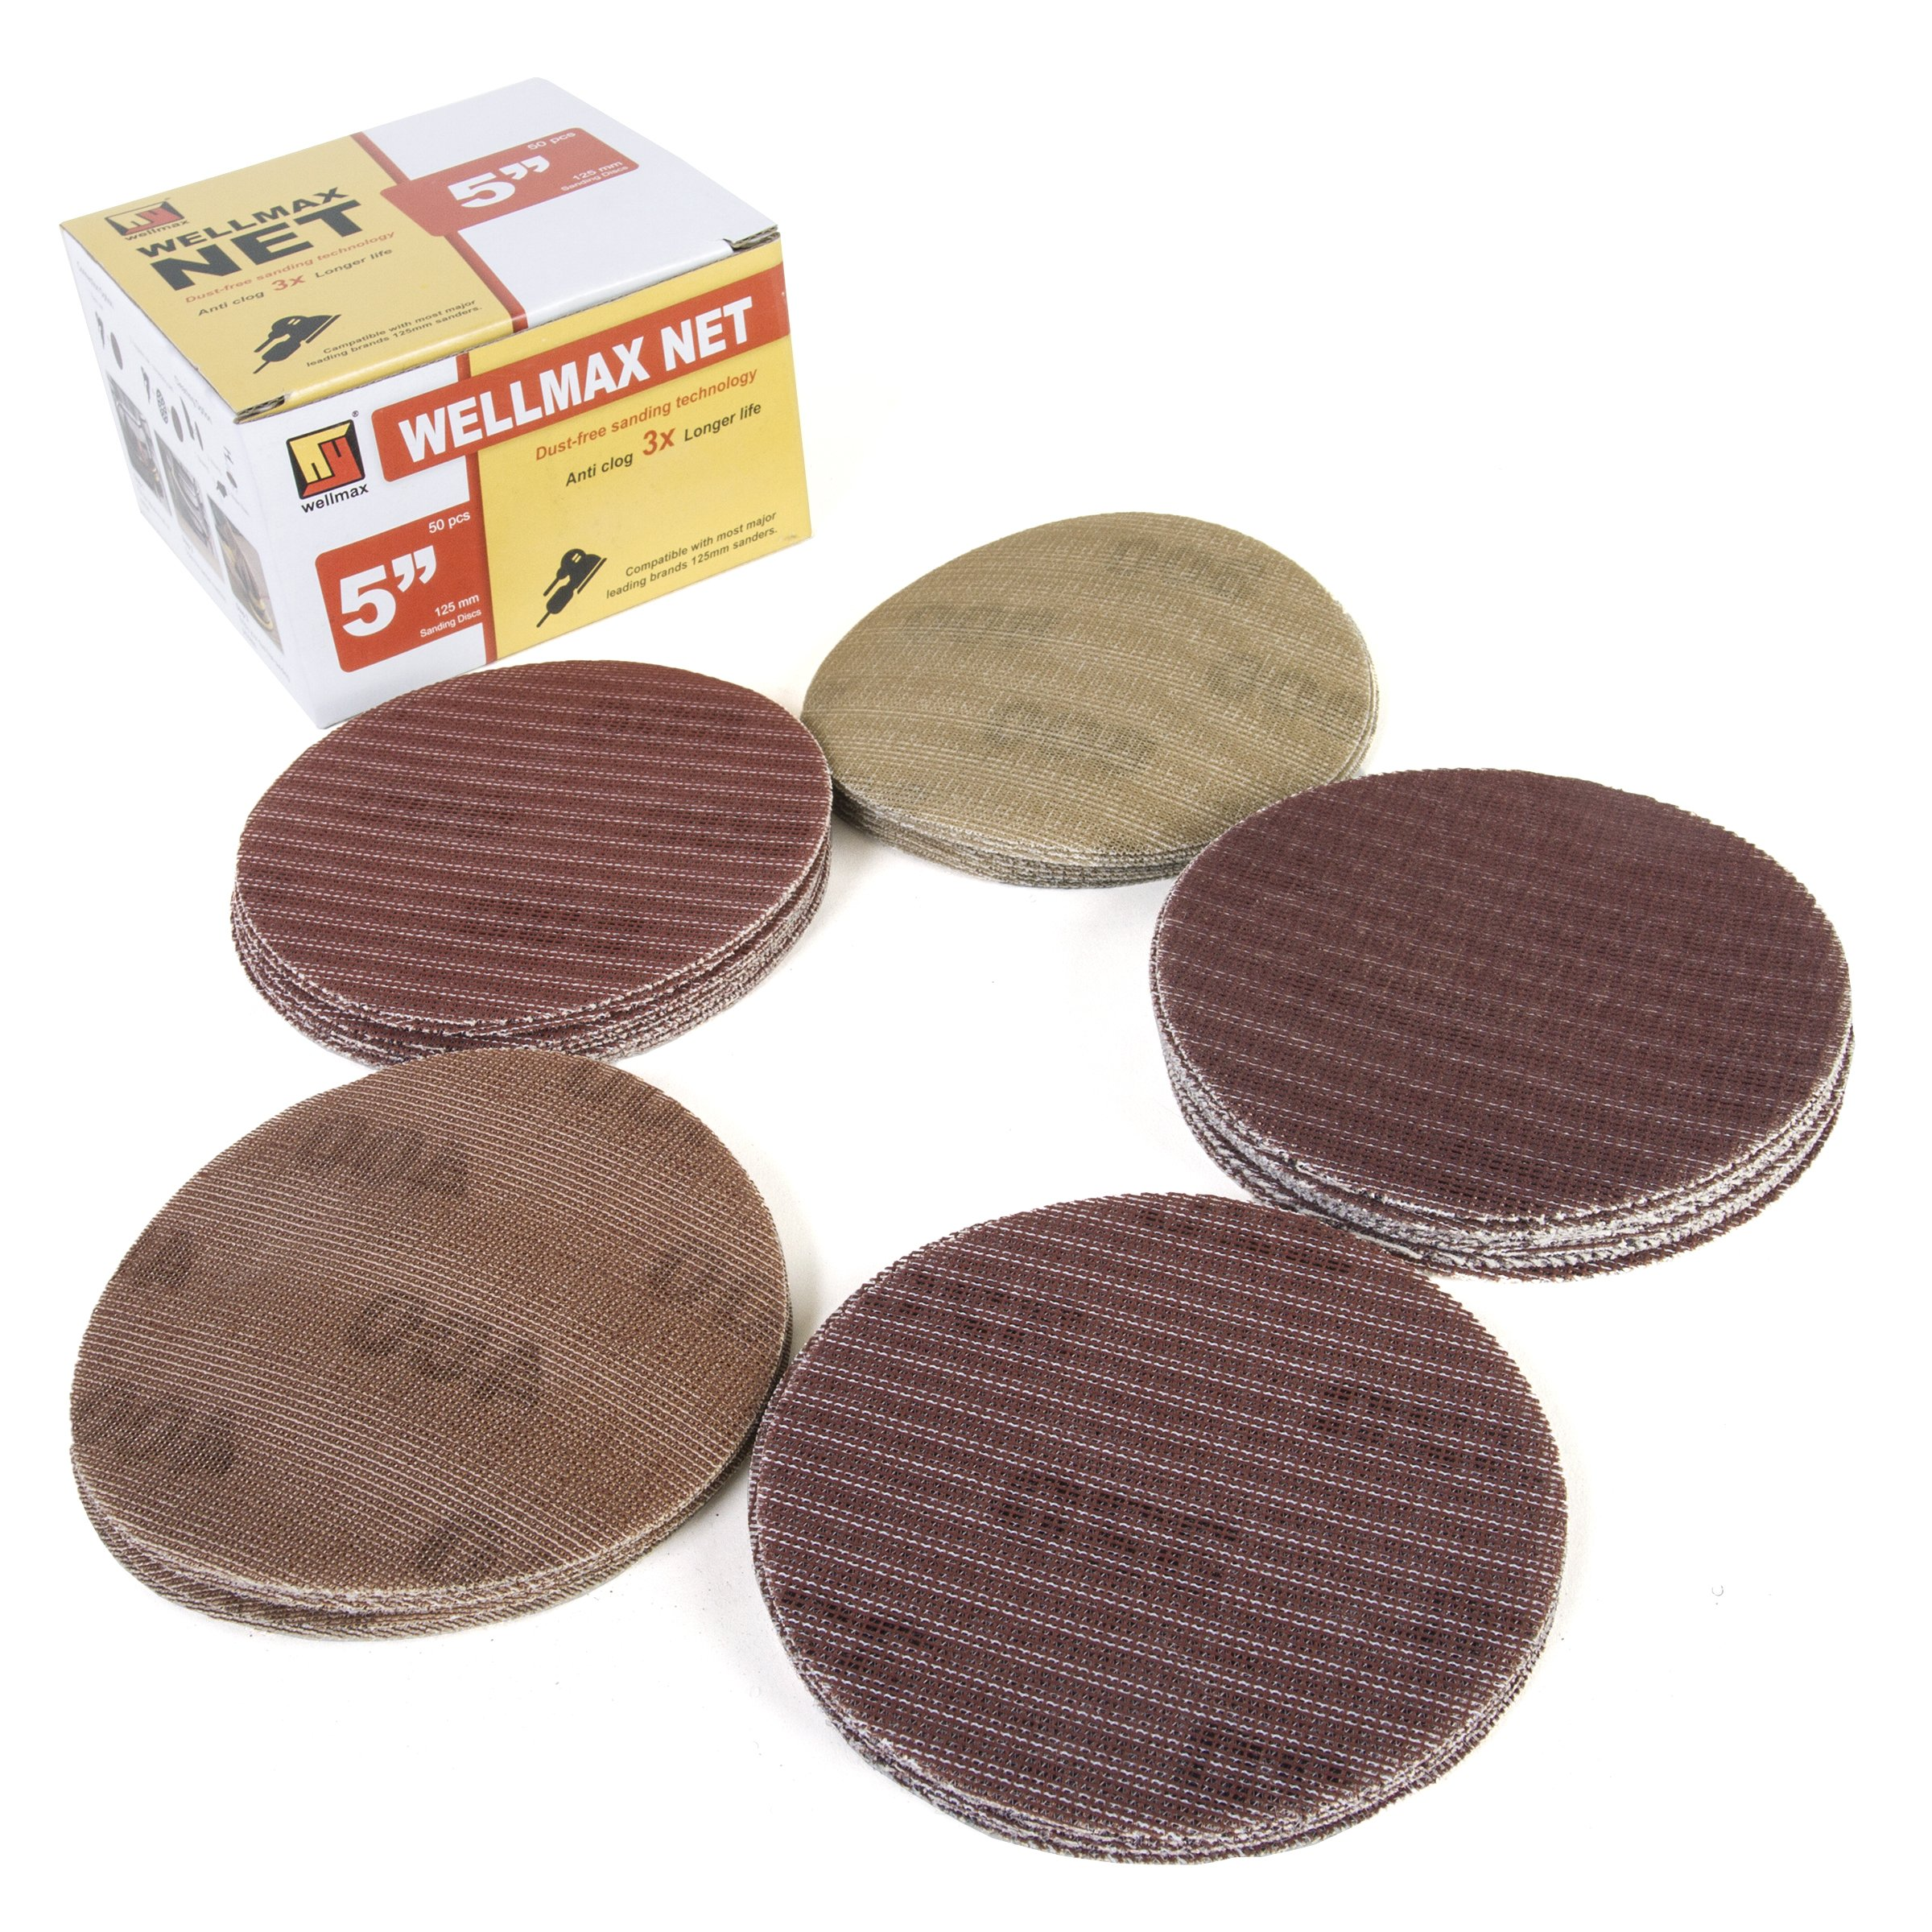 Wellmax 50 pcs Sand Paper disc | Gold 5-Inch Dustless hooks and loop | Grits assortment | Compatible with most leading sander and sandpaper | Grit 200/320/400/600/800 Sanding Disk Pads